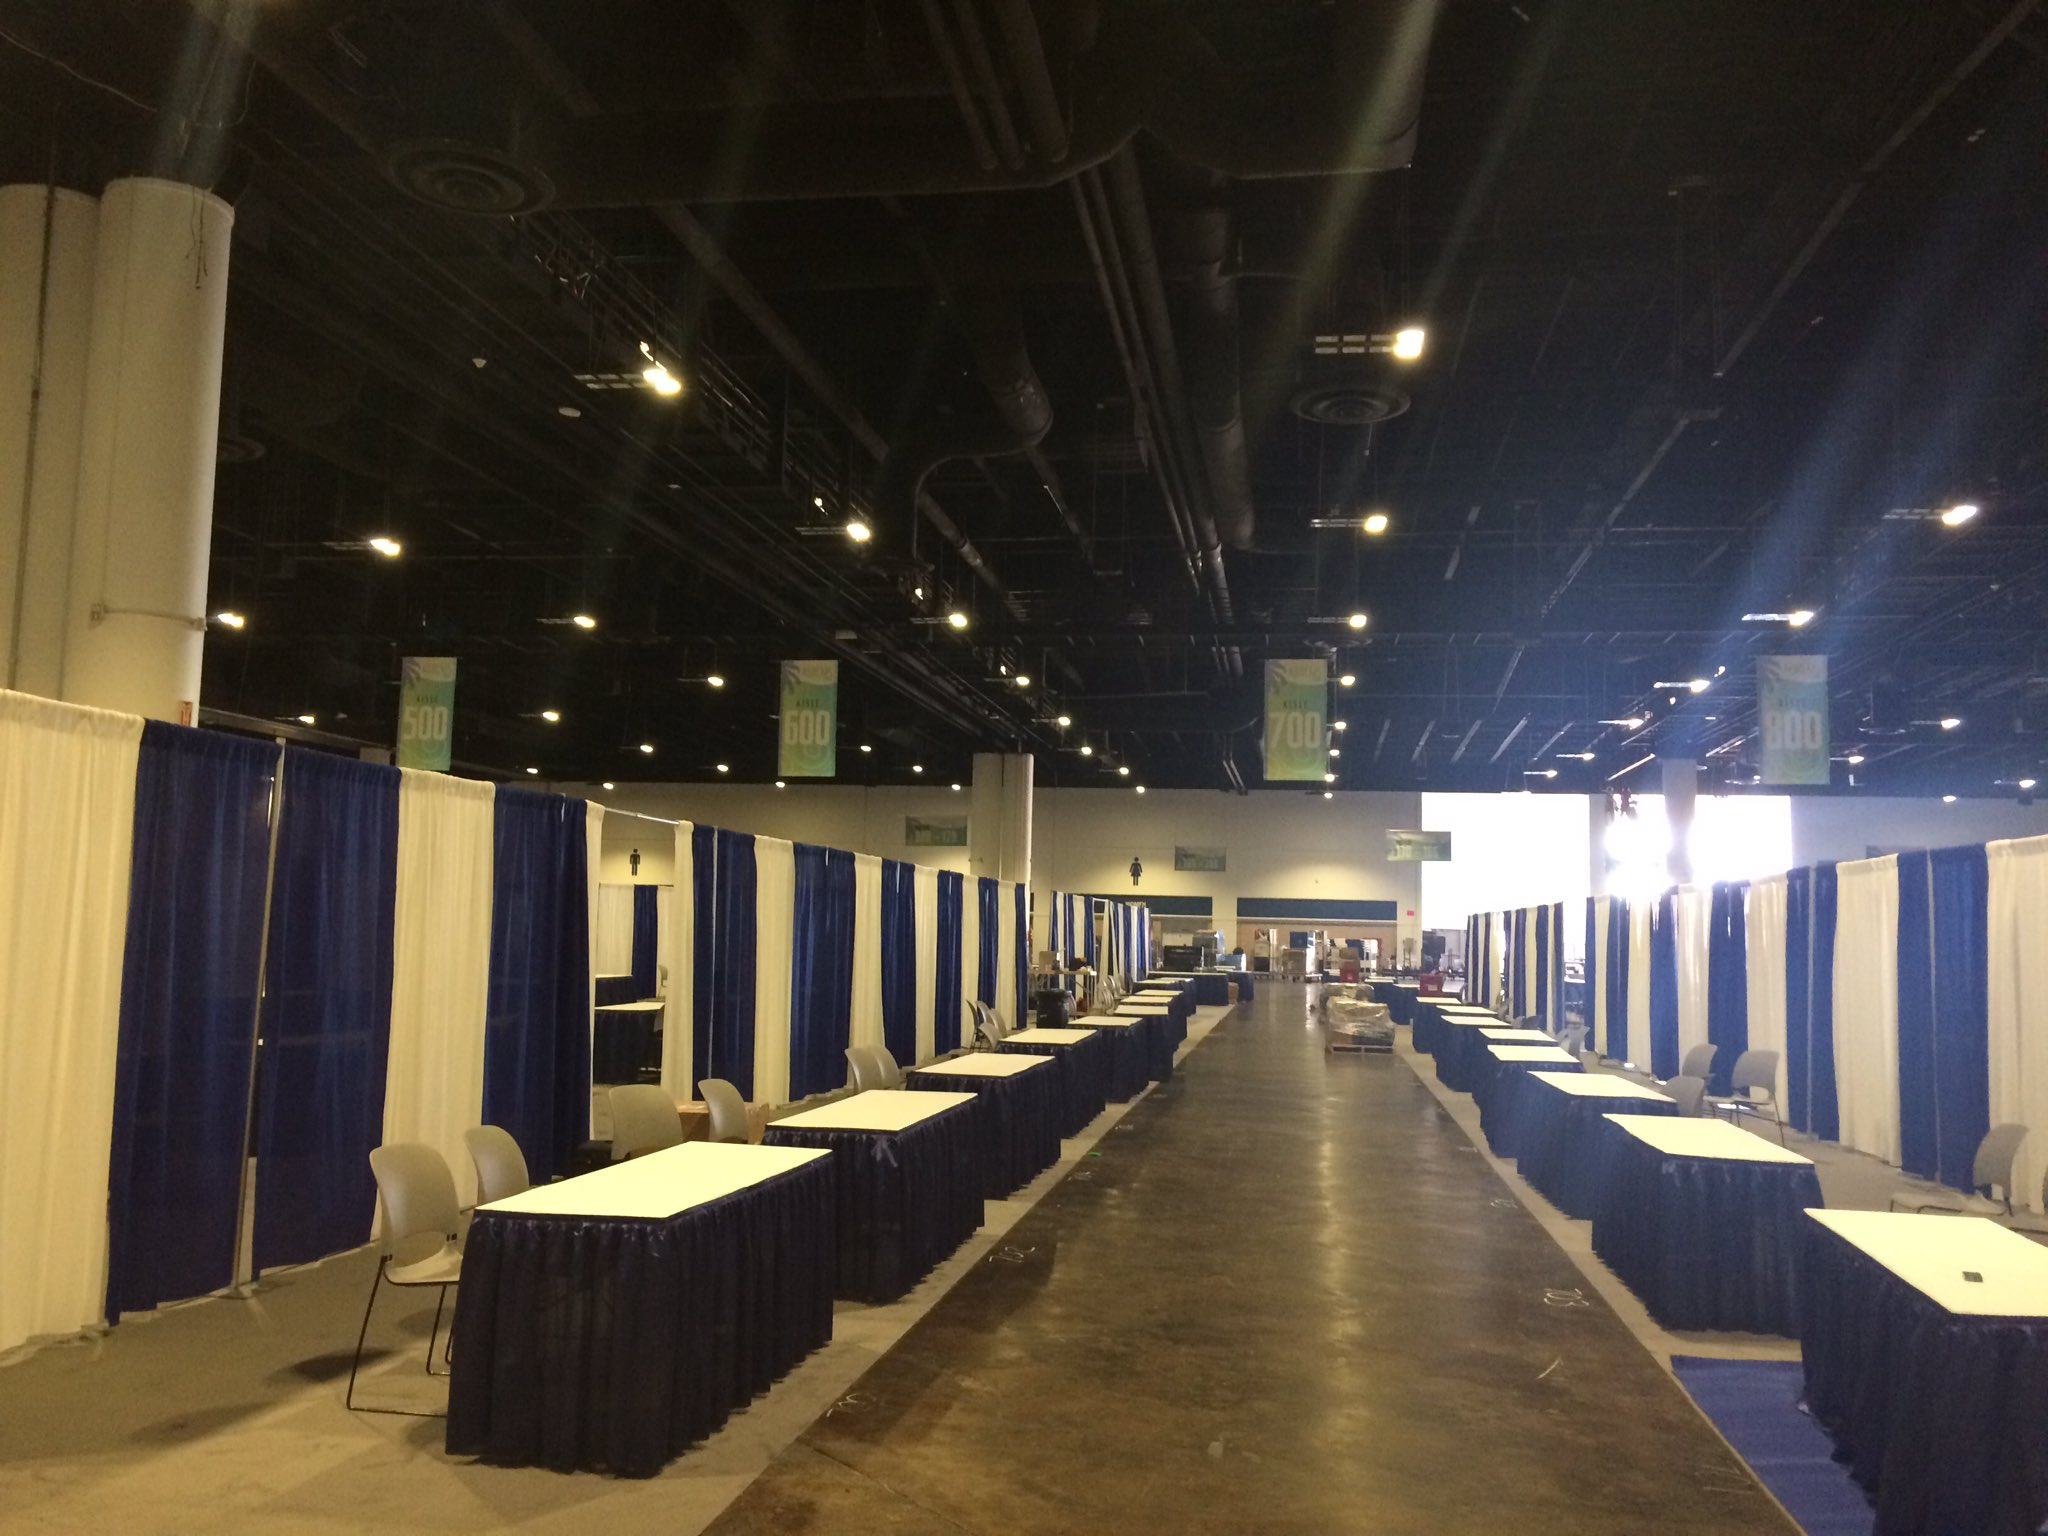 Setting up the exhibit hall for our record 353 exhibit booths! #ABRCMS https://t.co/9HBvgERfyH